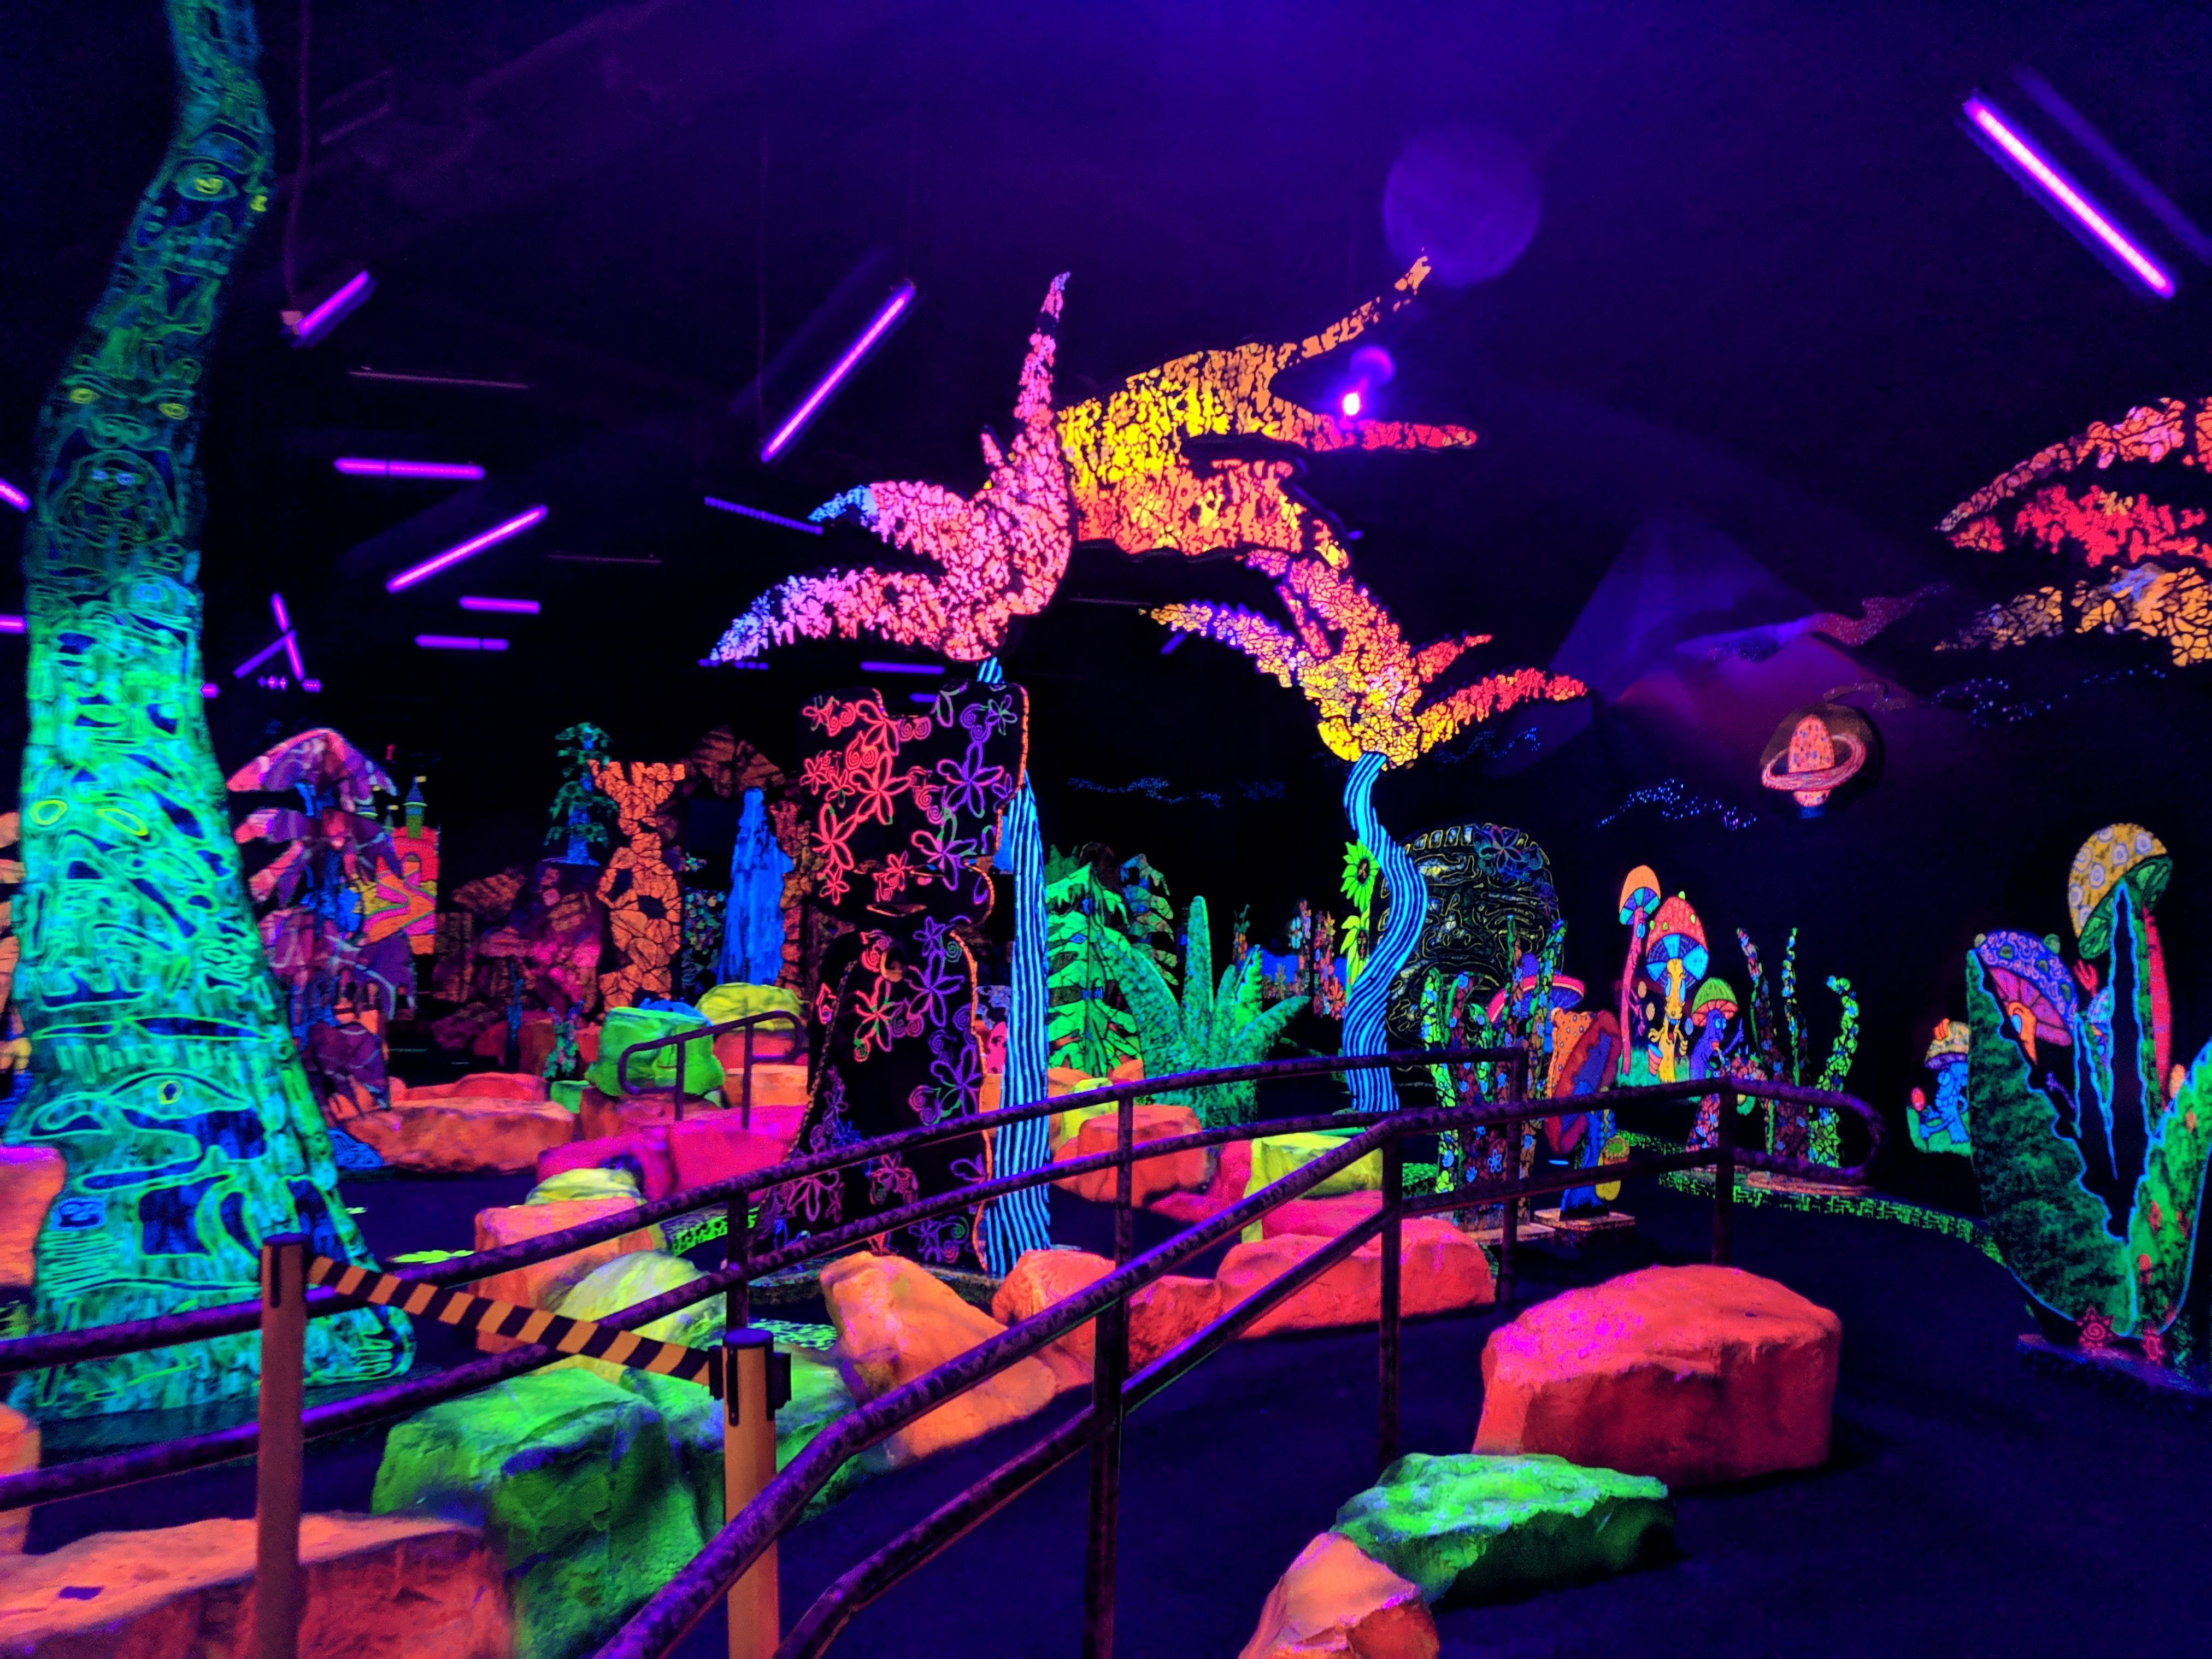 Putting Edge Glow In The Dark Mini Golf In 2020 With Images